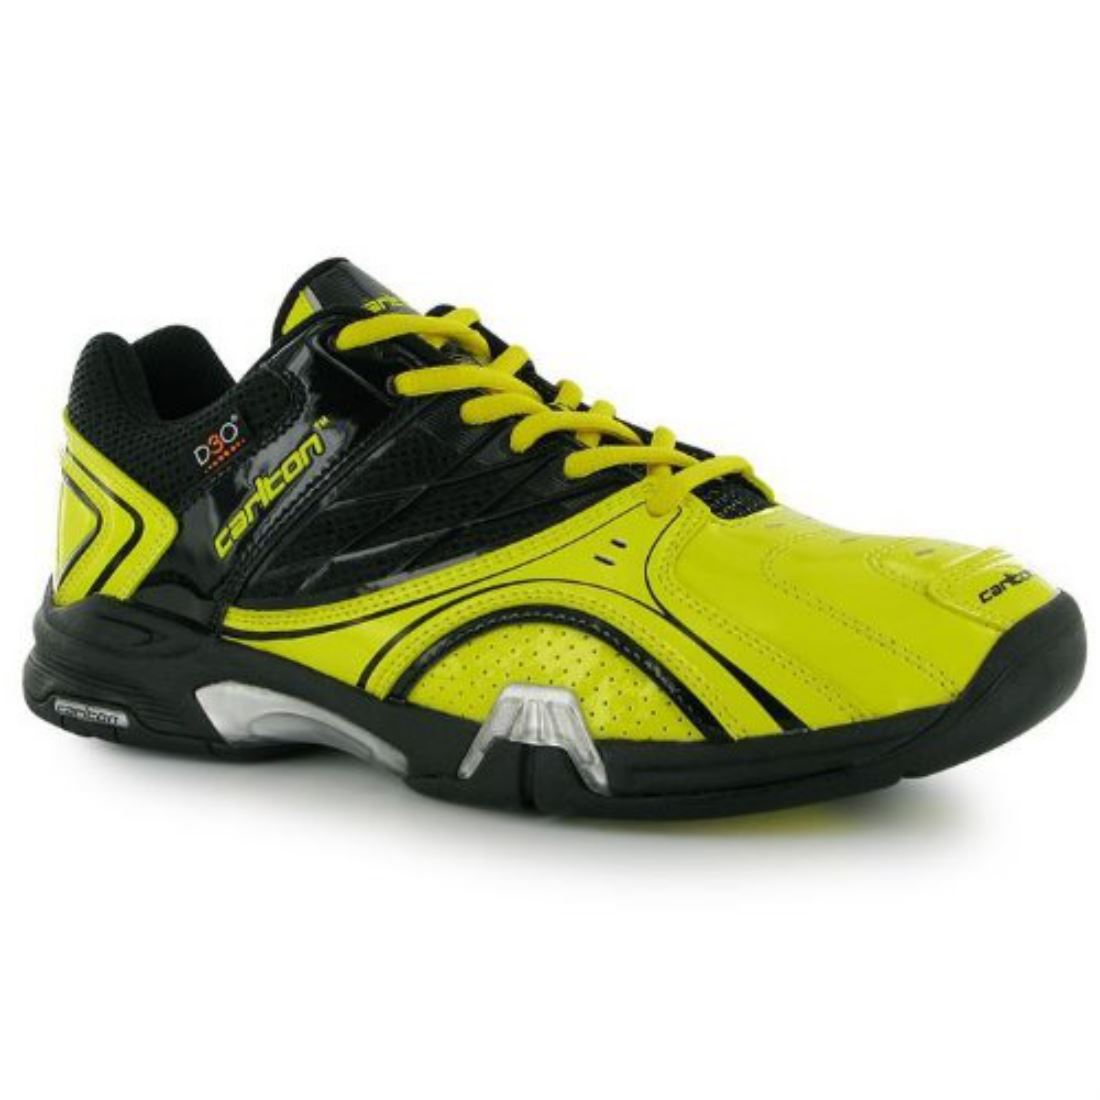 Carlton Mens Badminton Shoes